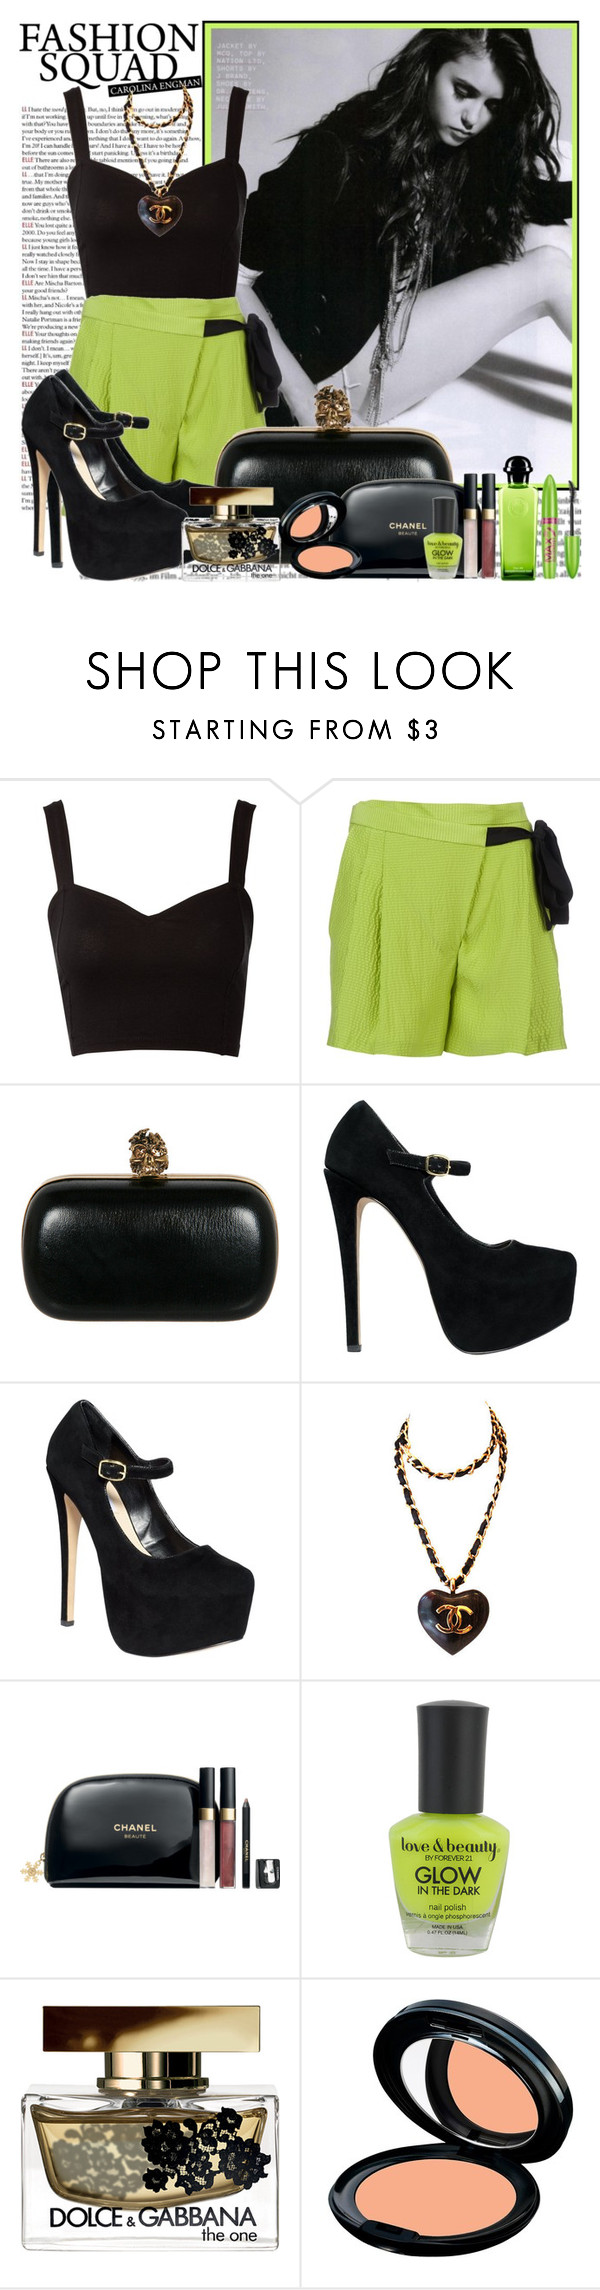 """"""".85. grass green"""" by misslie ❤ liked on Polyvore featuring Lipsy, Matthew Williamson, Alexander McQueen, Steve Madden, The Cambridge Satchel Company, Chanel, Forever 21, Dolce&Gabbana, Kanebo and Hermès"""